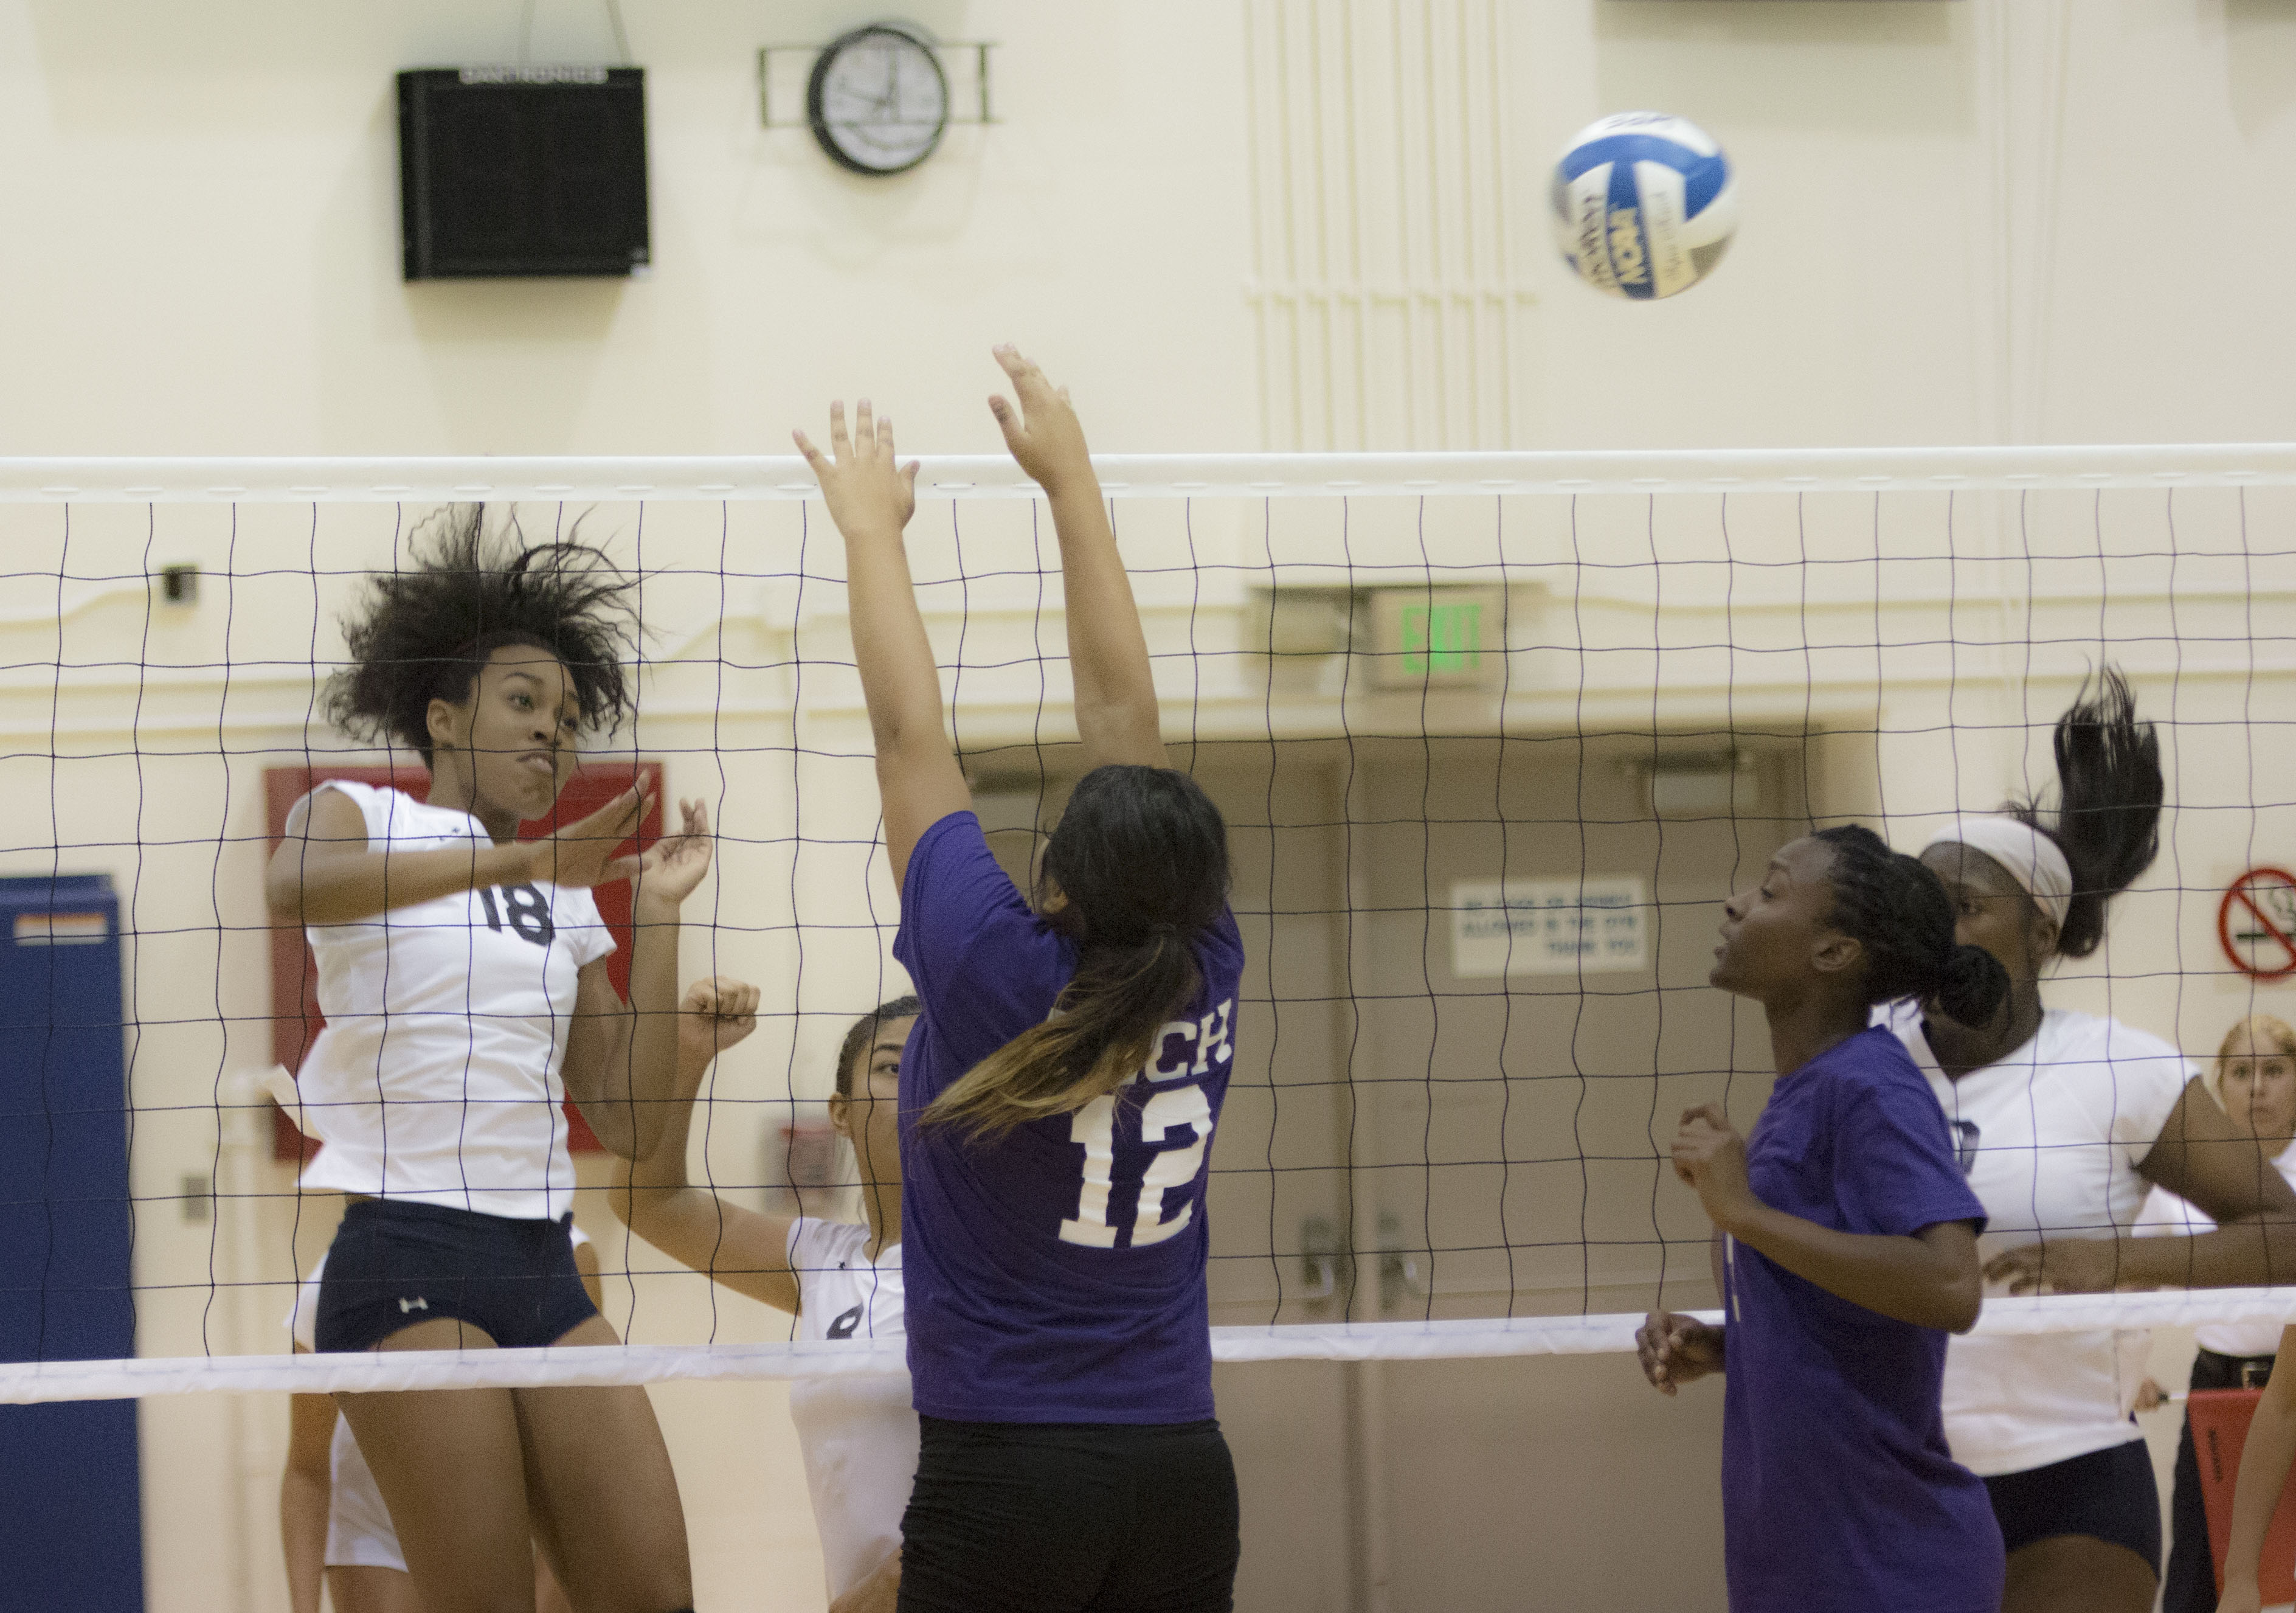 El Camino women's volleyball team outperforms L.A. Trade Tech College in sweep